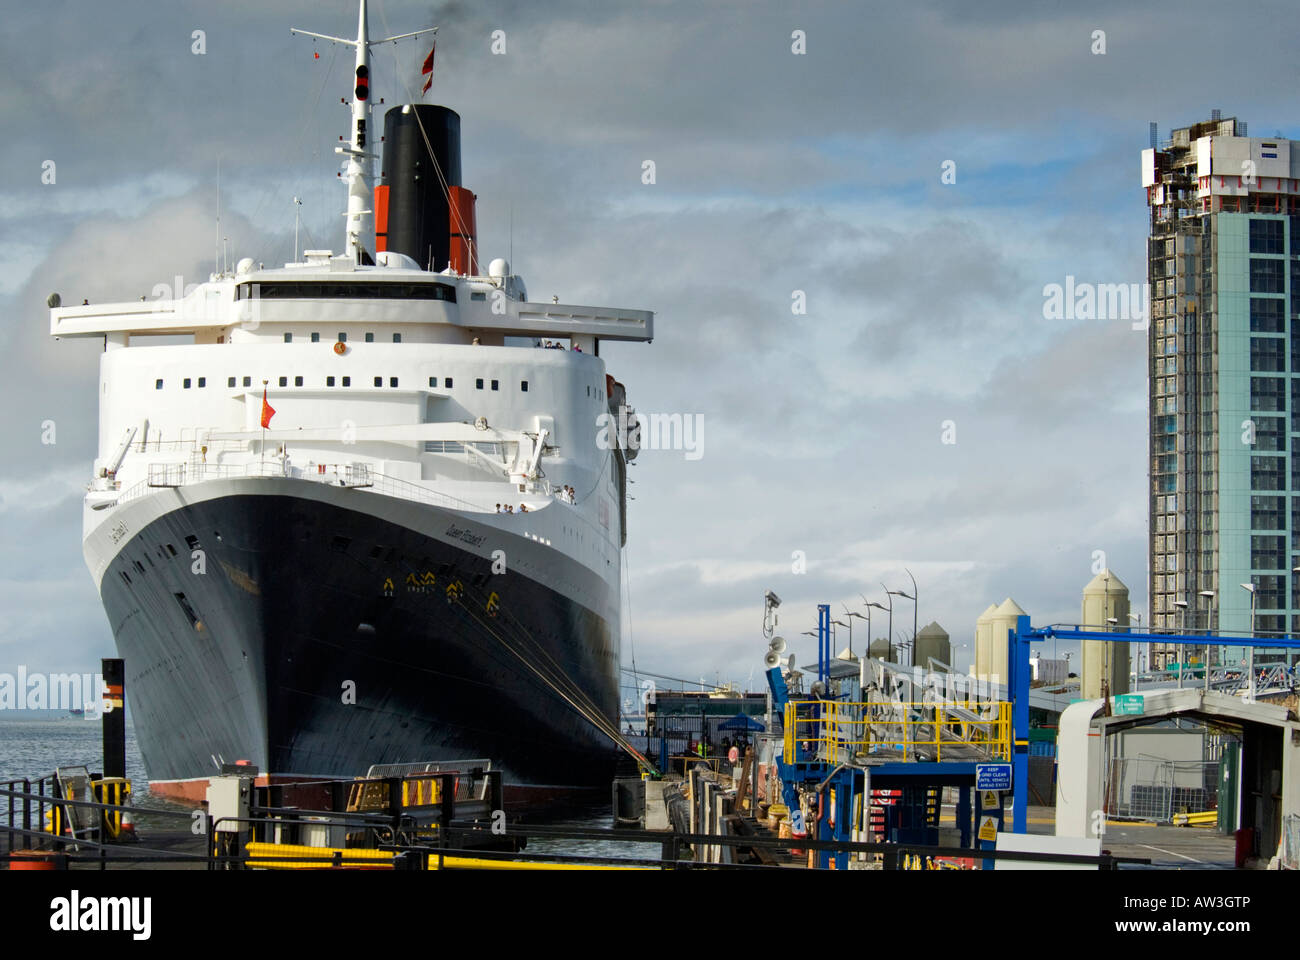 The Cunard liner QE2 berthed at Liverpool. - Stock Image